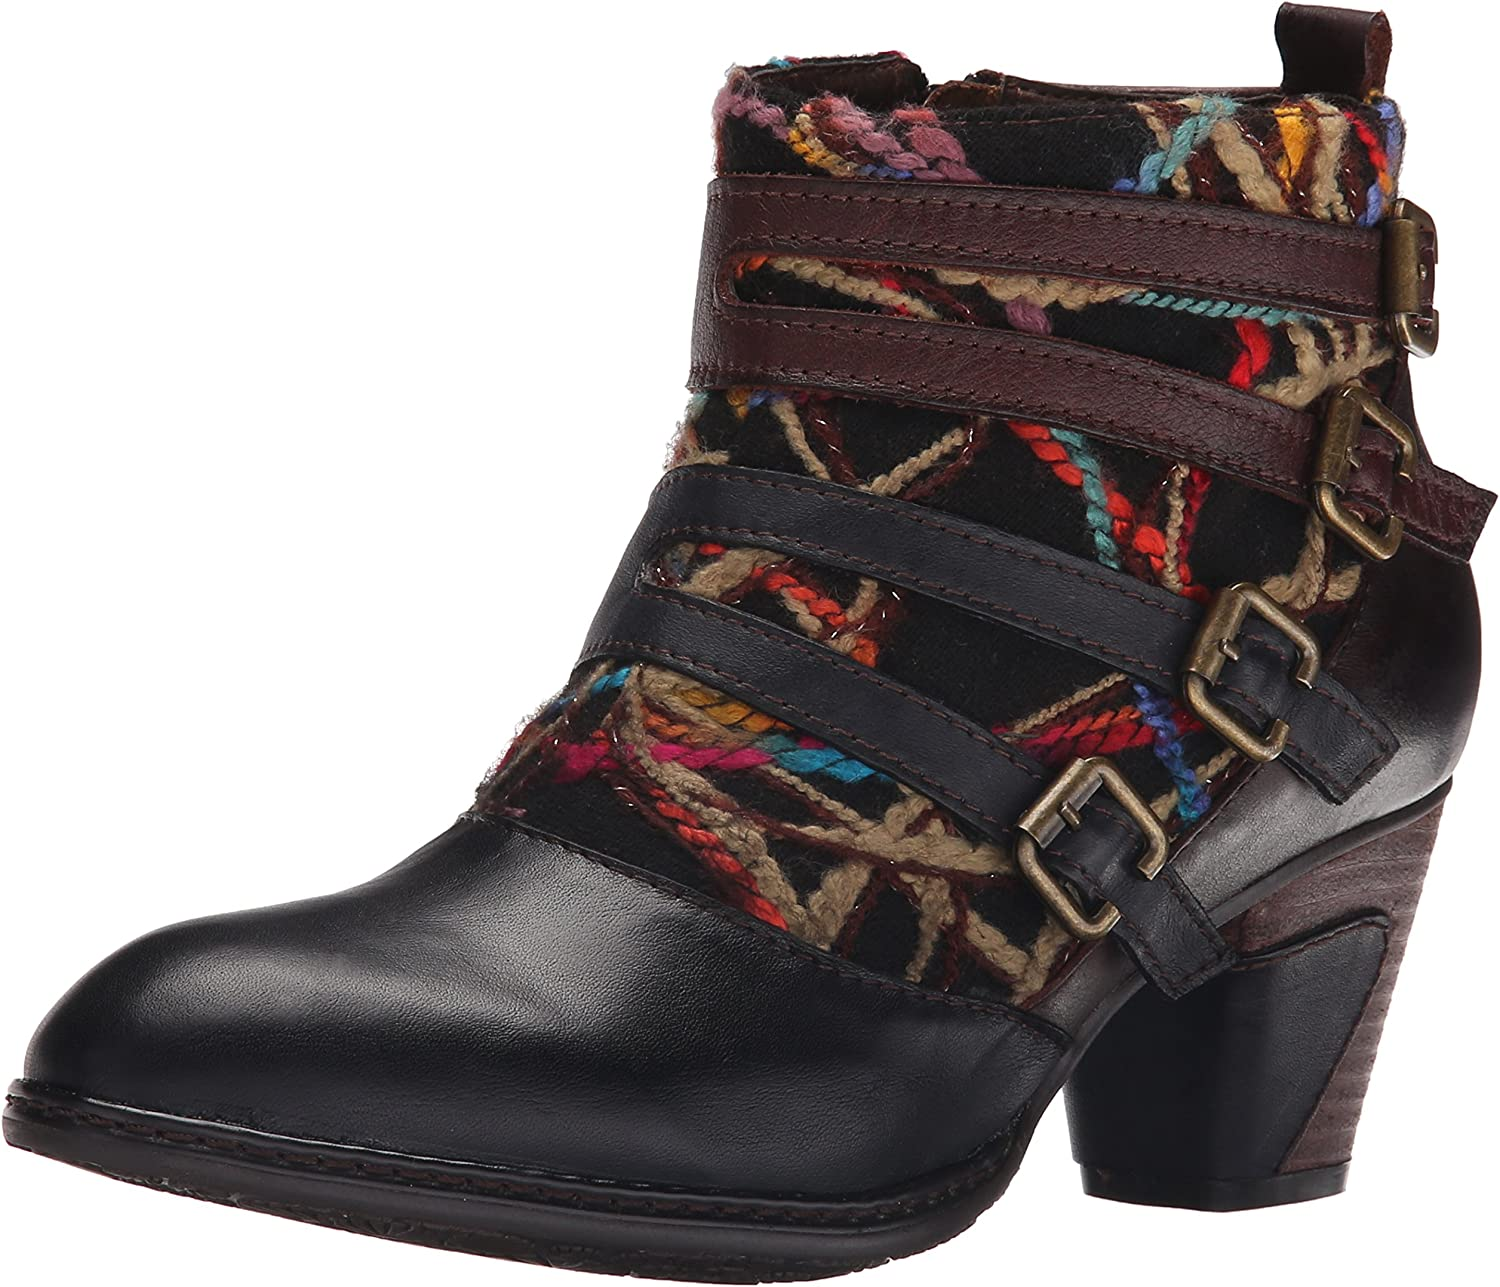 L'Artiste by Spring Step Womens Redding Boot